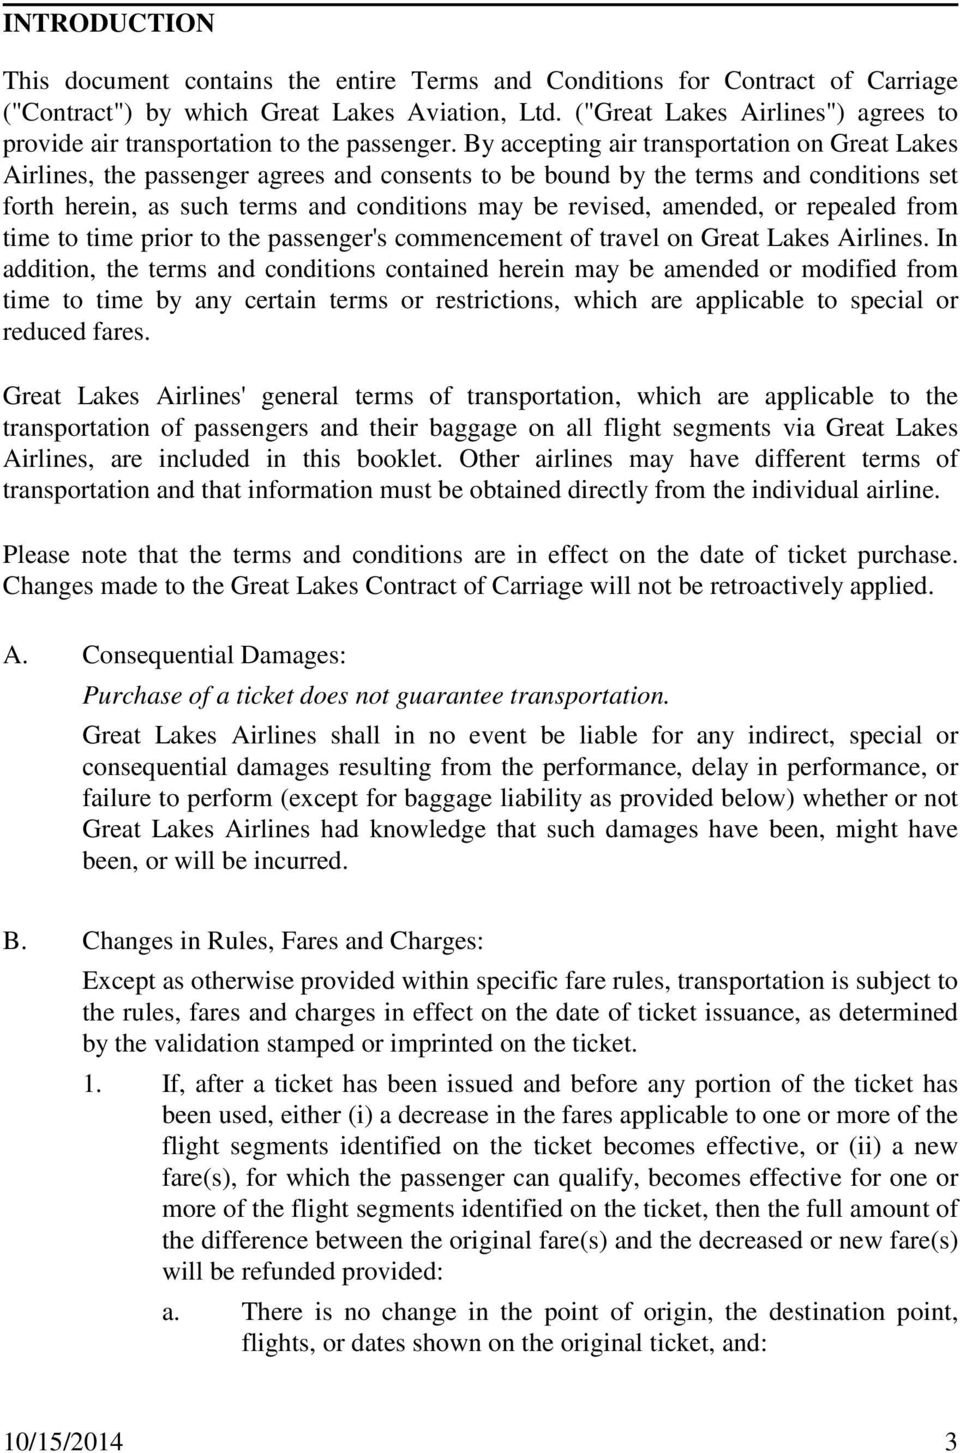 By accepting air transportation on Great Lakes Airlines, the passenger agrees and consents to be bound by the terms and conditions set forth herein, as such terms and conditions may be revised,